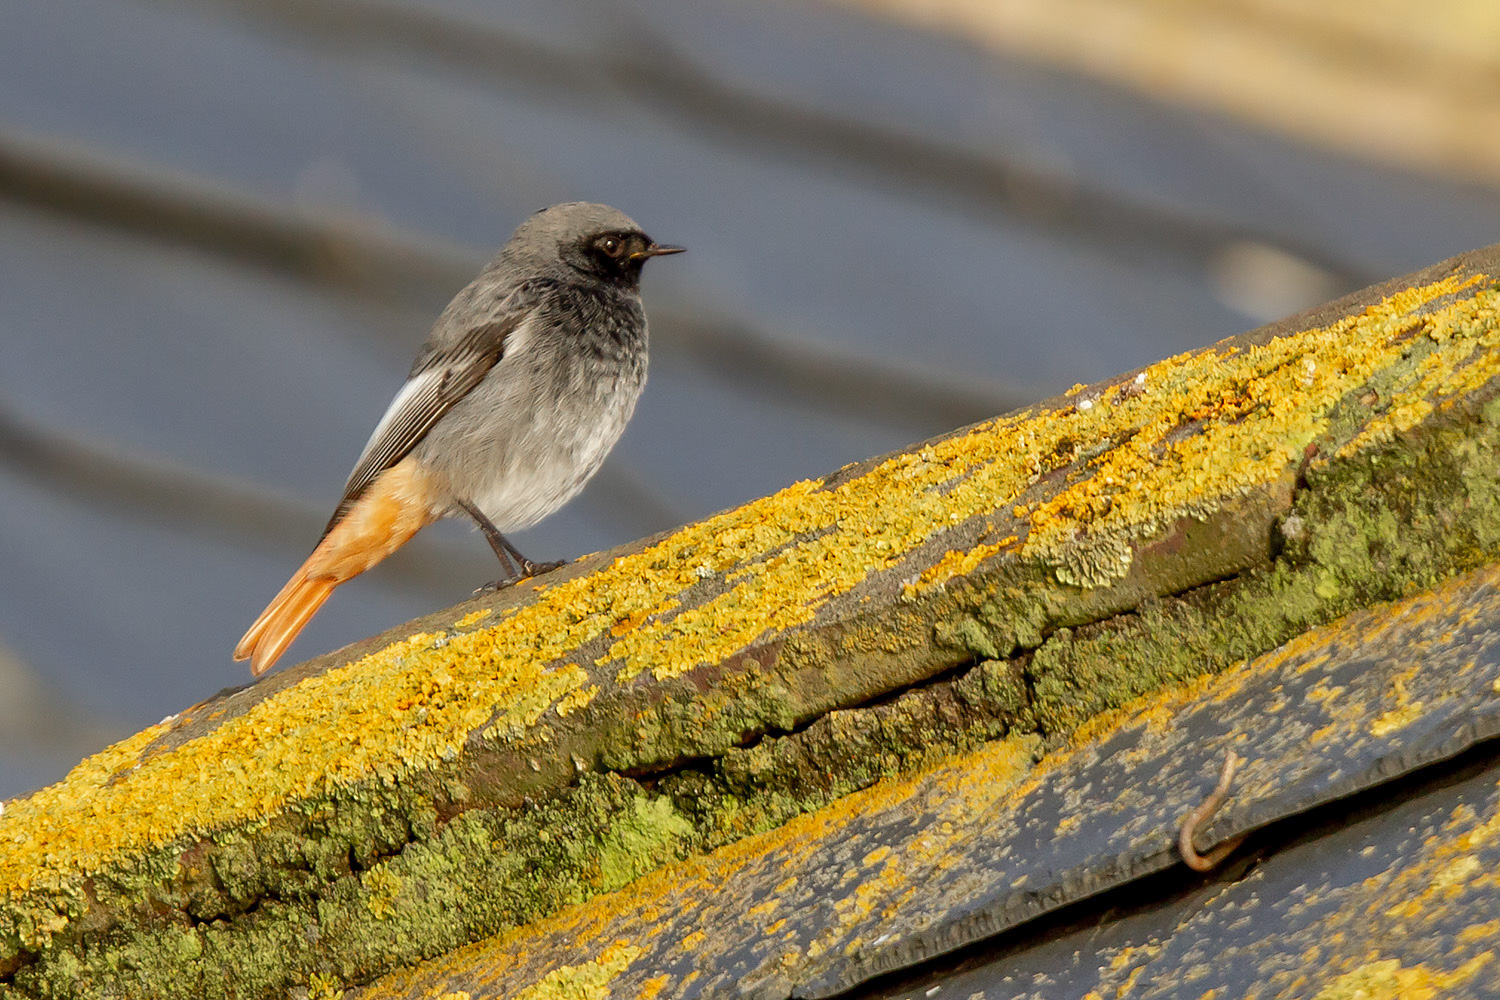 Black Redstart, December 2019 (© Neil G. Morris)